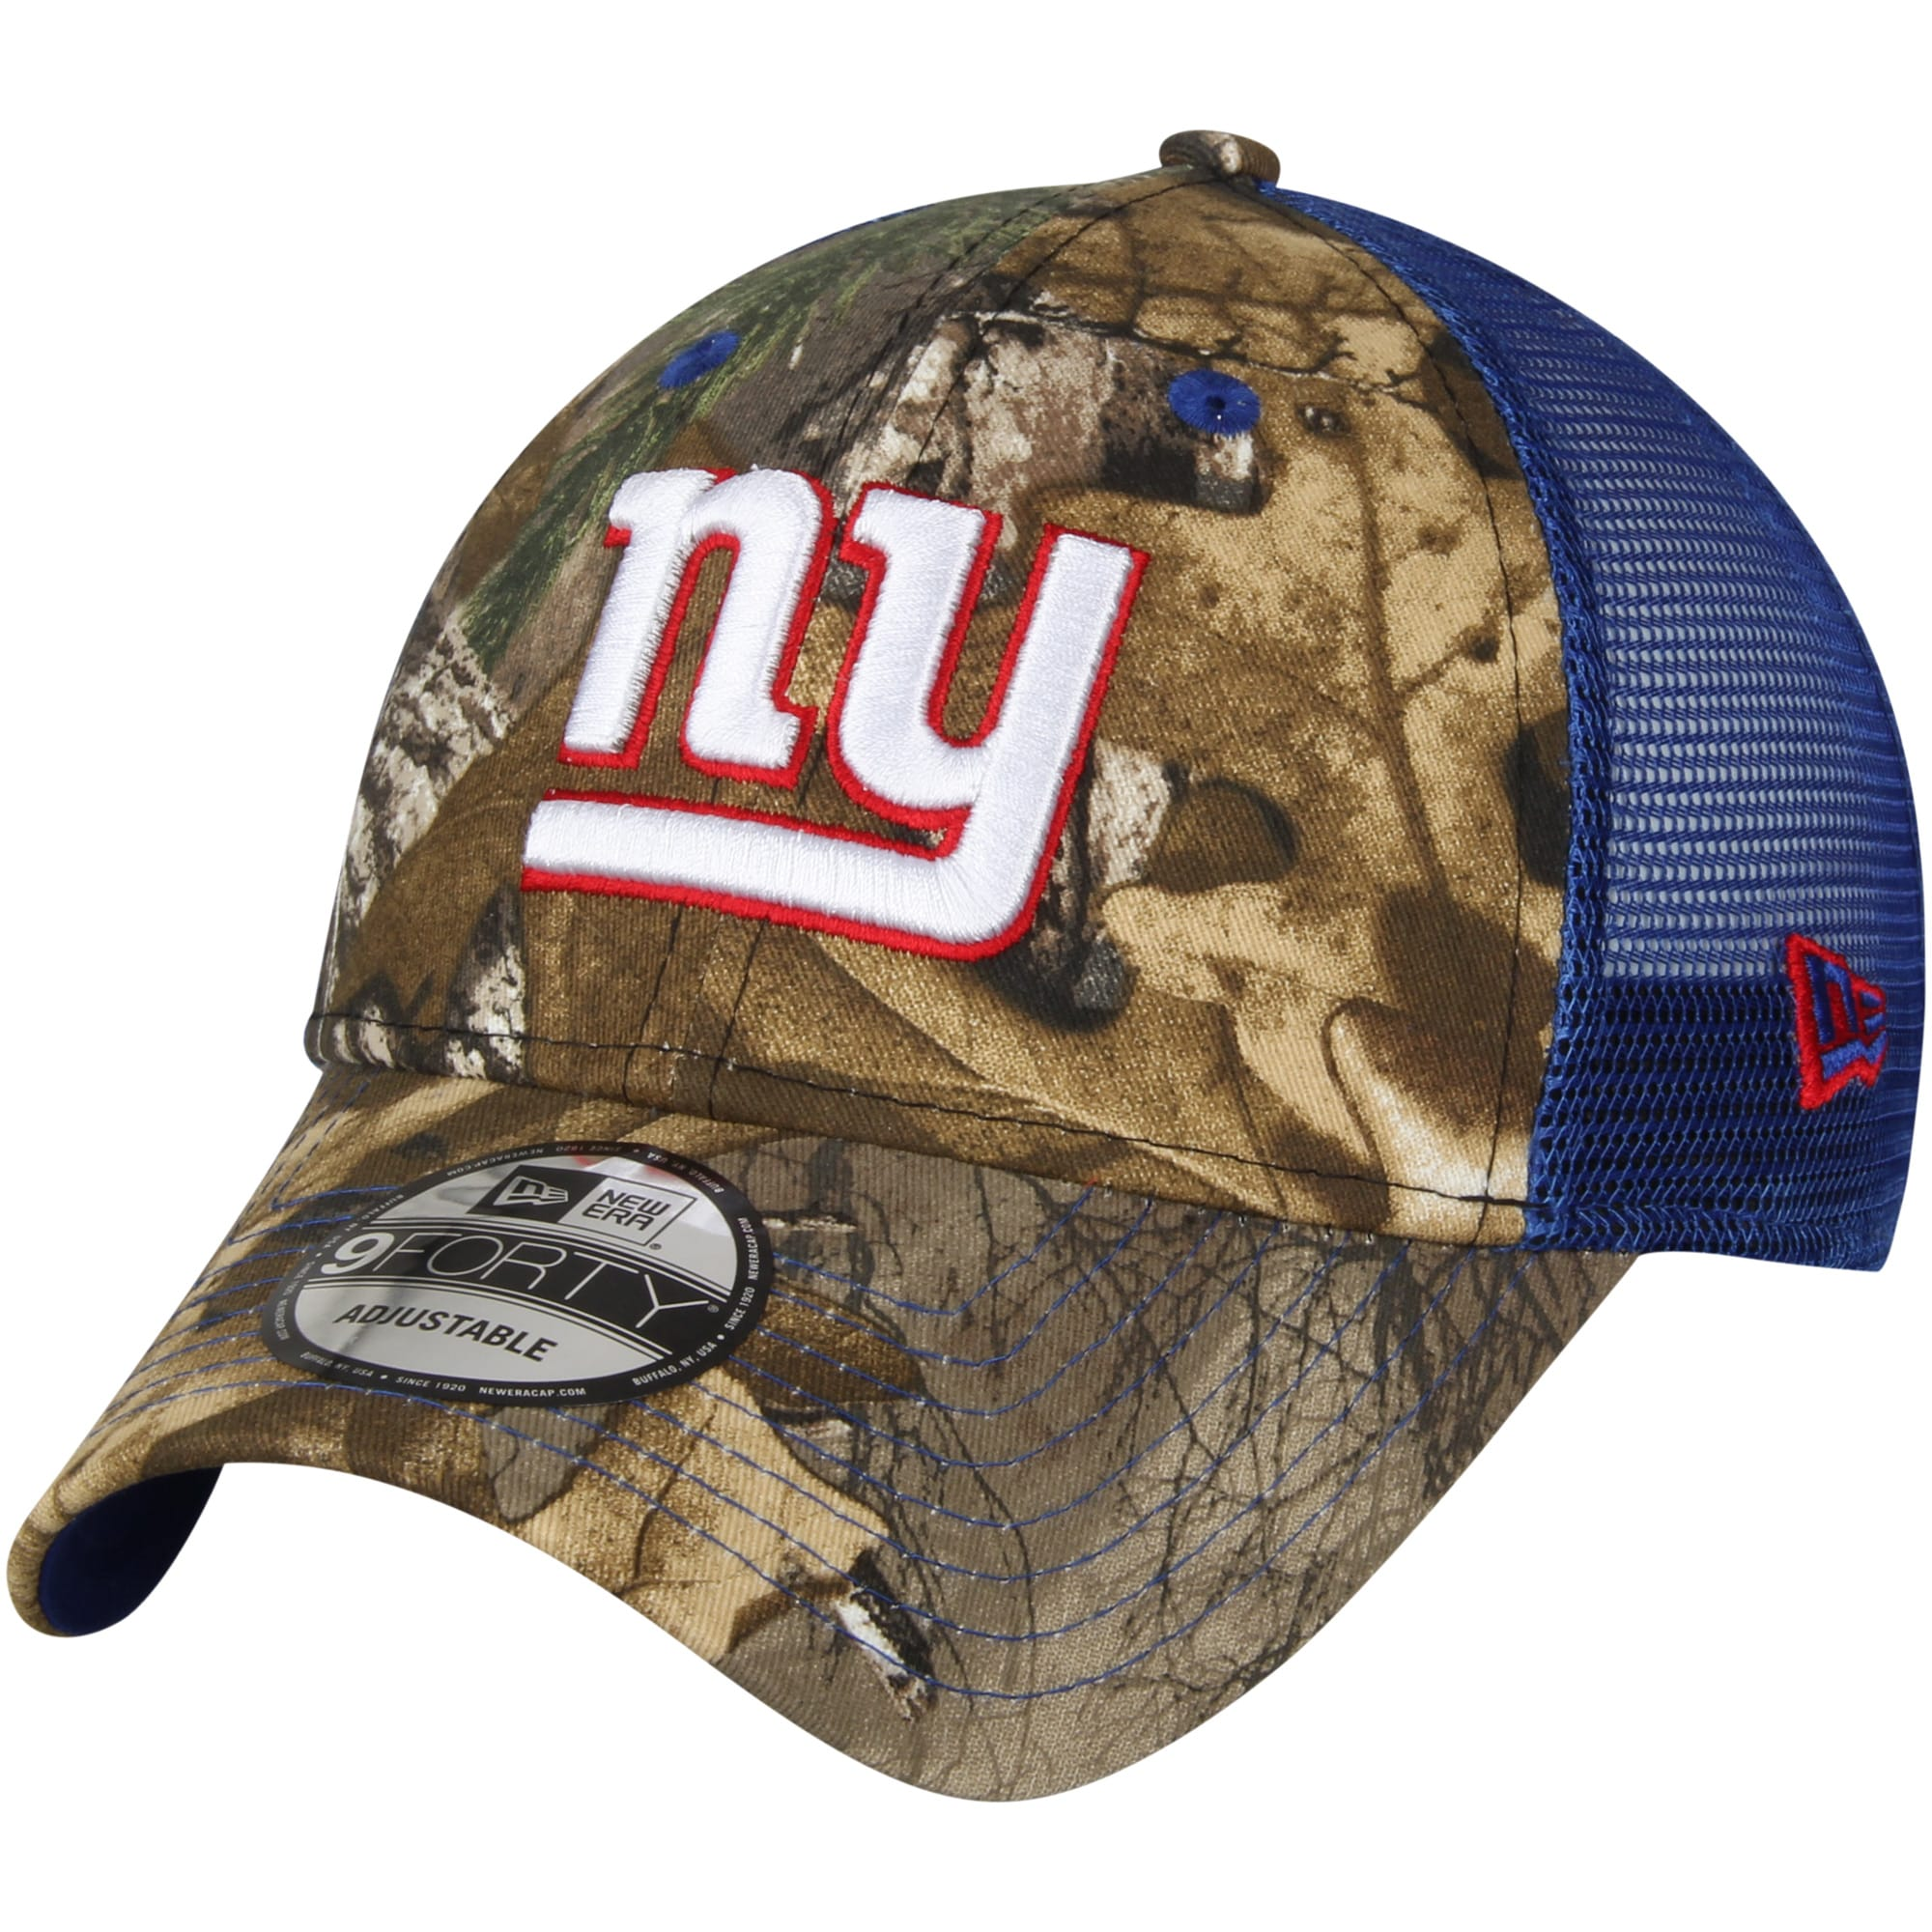 New York Giants New Era Trucker 9FORTY Adjustable Snapback Hat - Realtree Camo/Royal